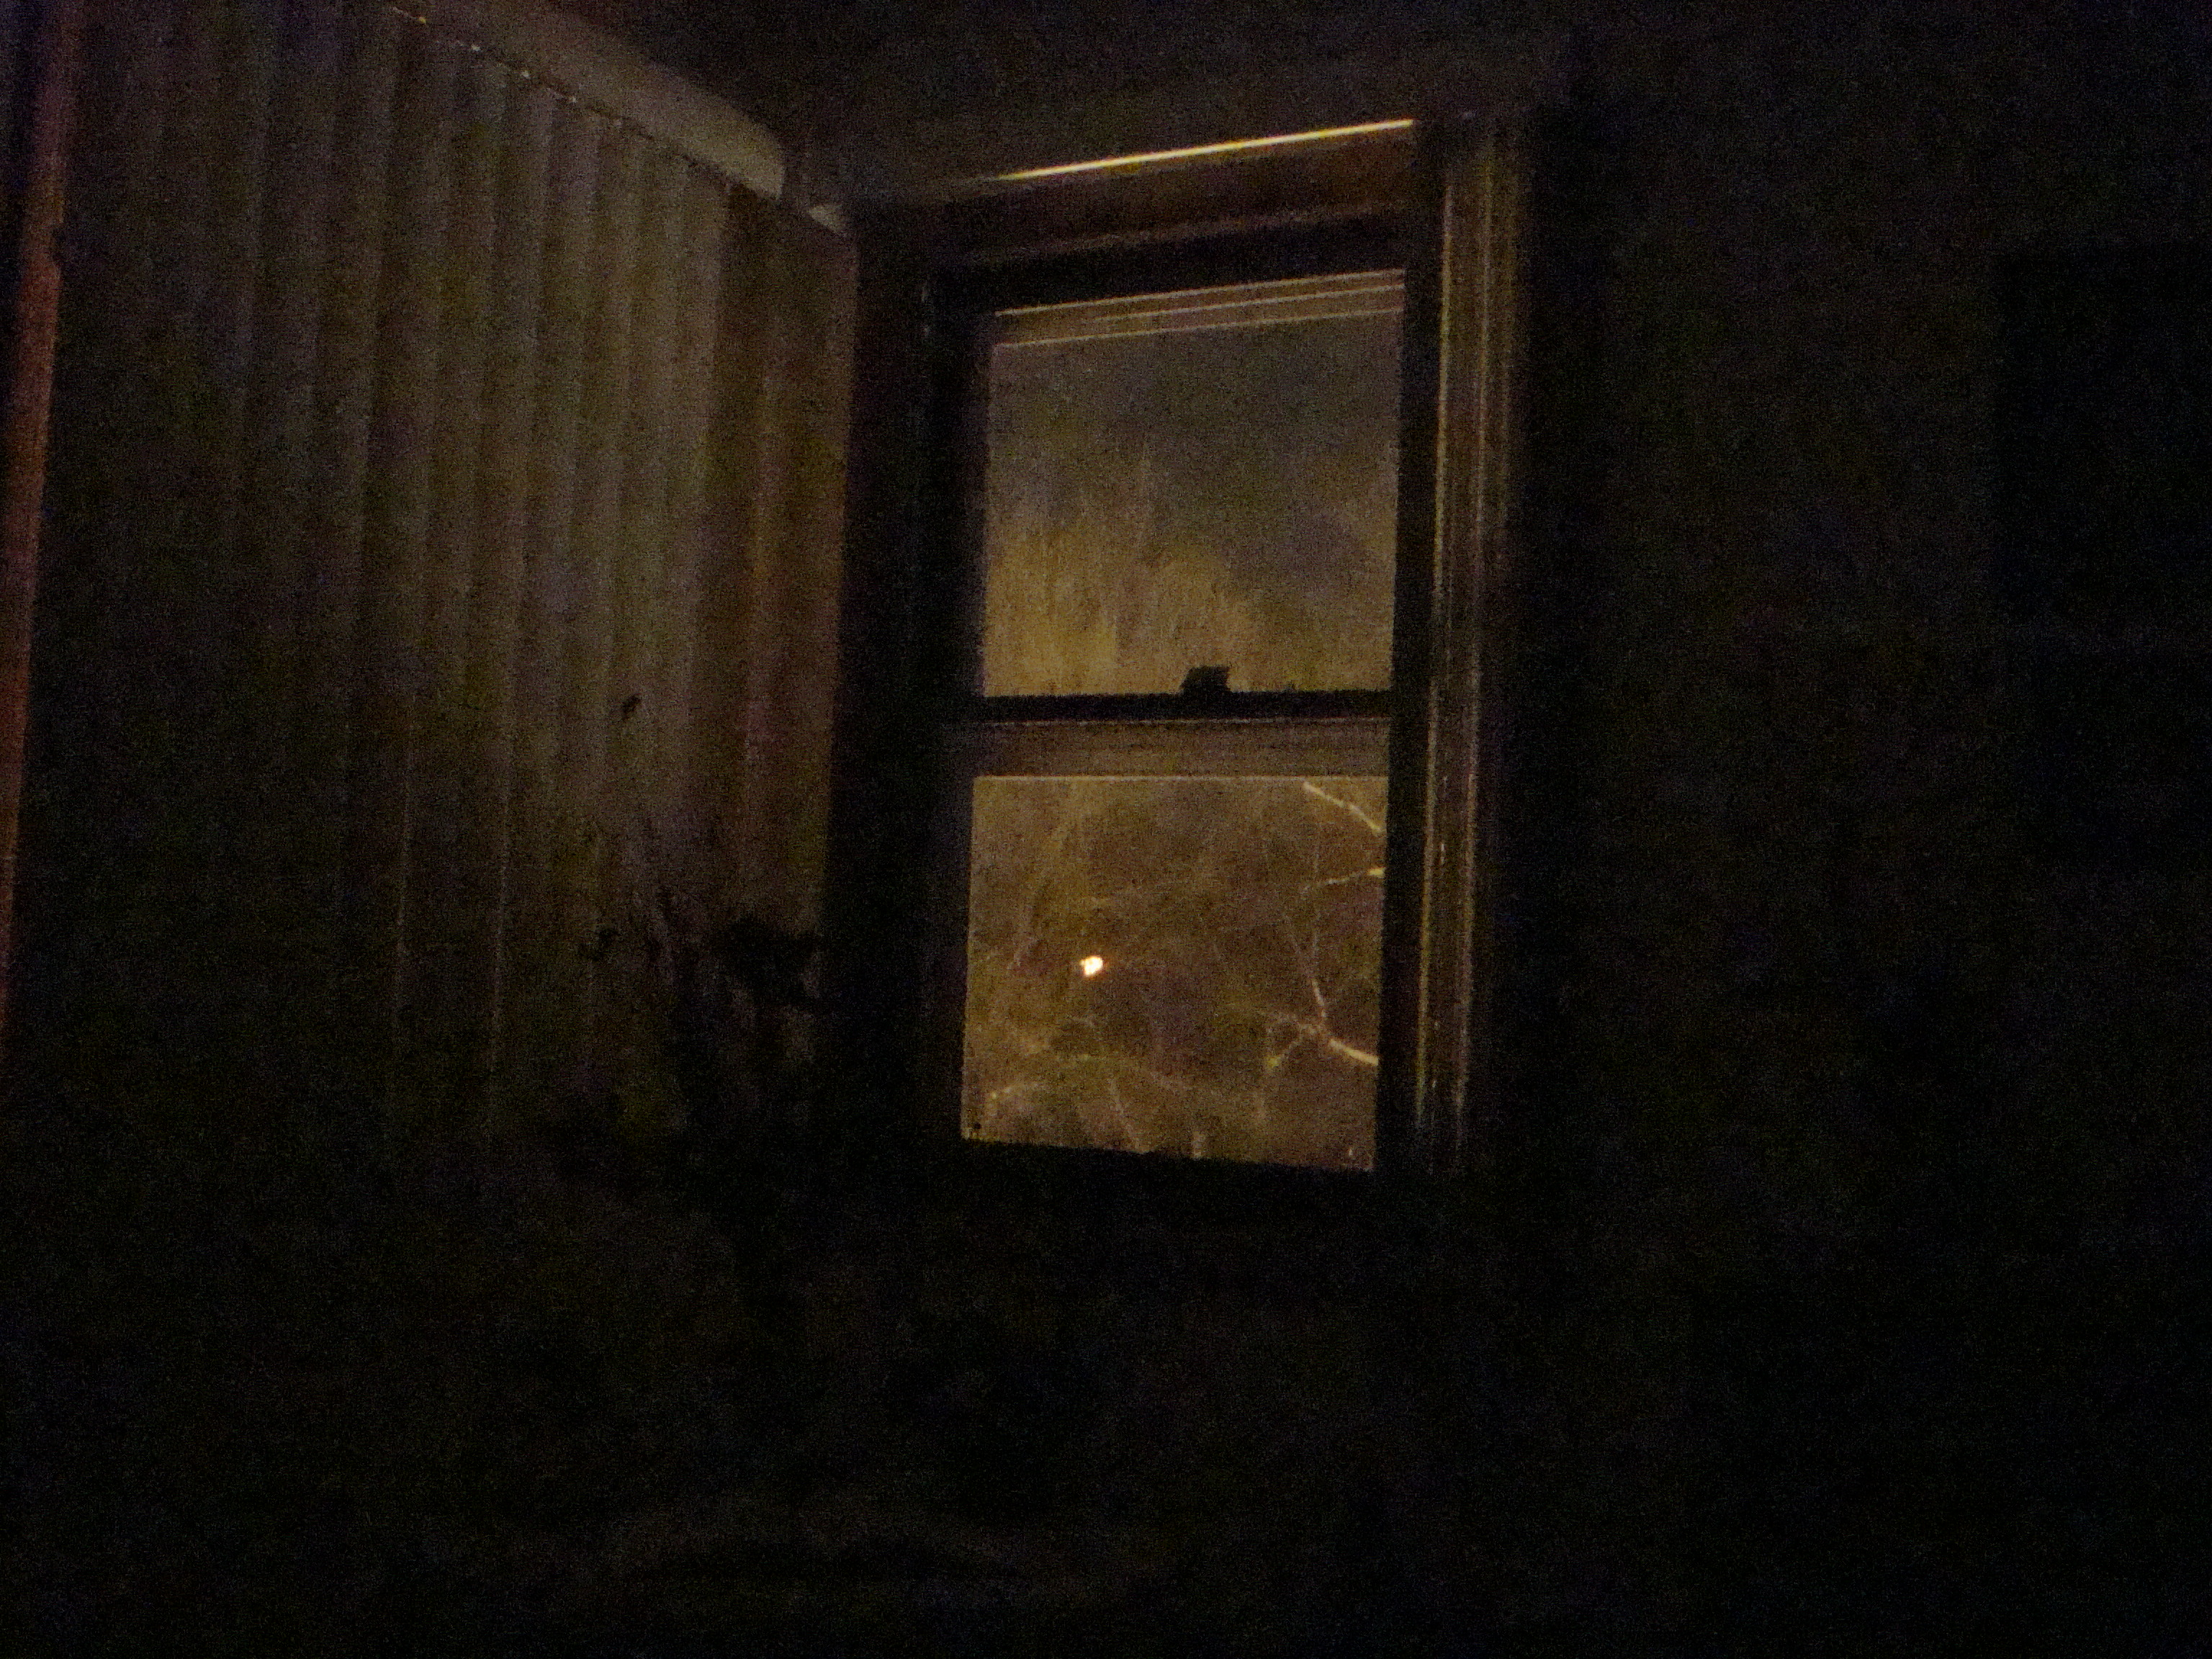 Window at night from outside - Comments